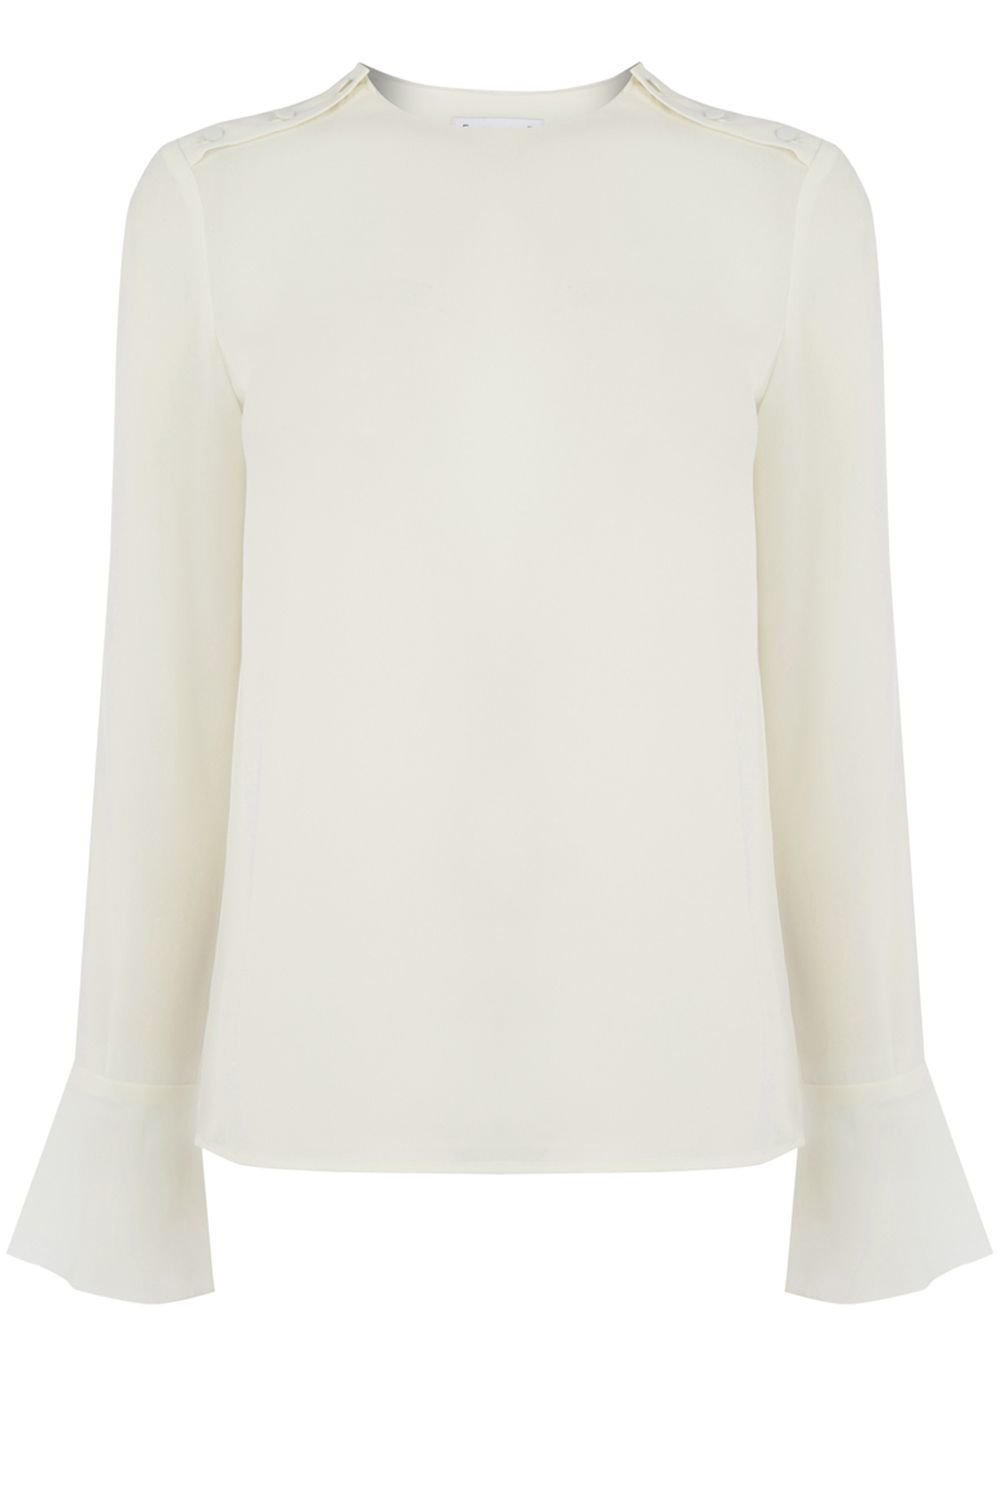 Button Shoulder Top, Cream - sleeve style: bell sleeve; pattern: plain; style: blouse; predominant colour: ivory/cream; occasions: evening, work, creative work; length: standard; fibres: polyester/polyamide - 100%; fit: body skimming; neckline: crew; sleeve length: long sleeve; texture group: crepes; pattern type: fabric; wardrobe: basic; season: a/w 2016